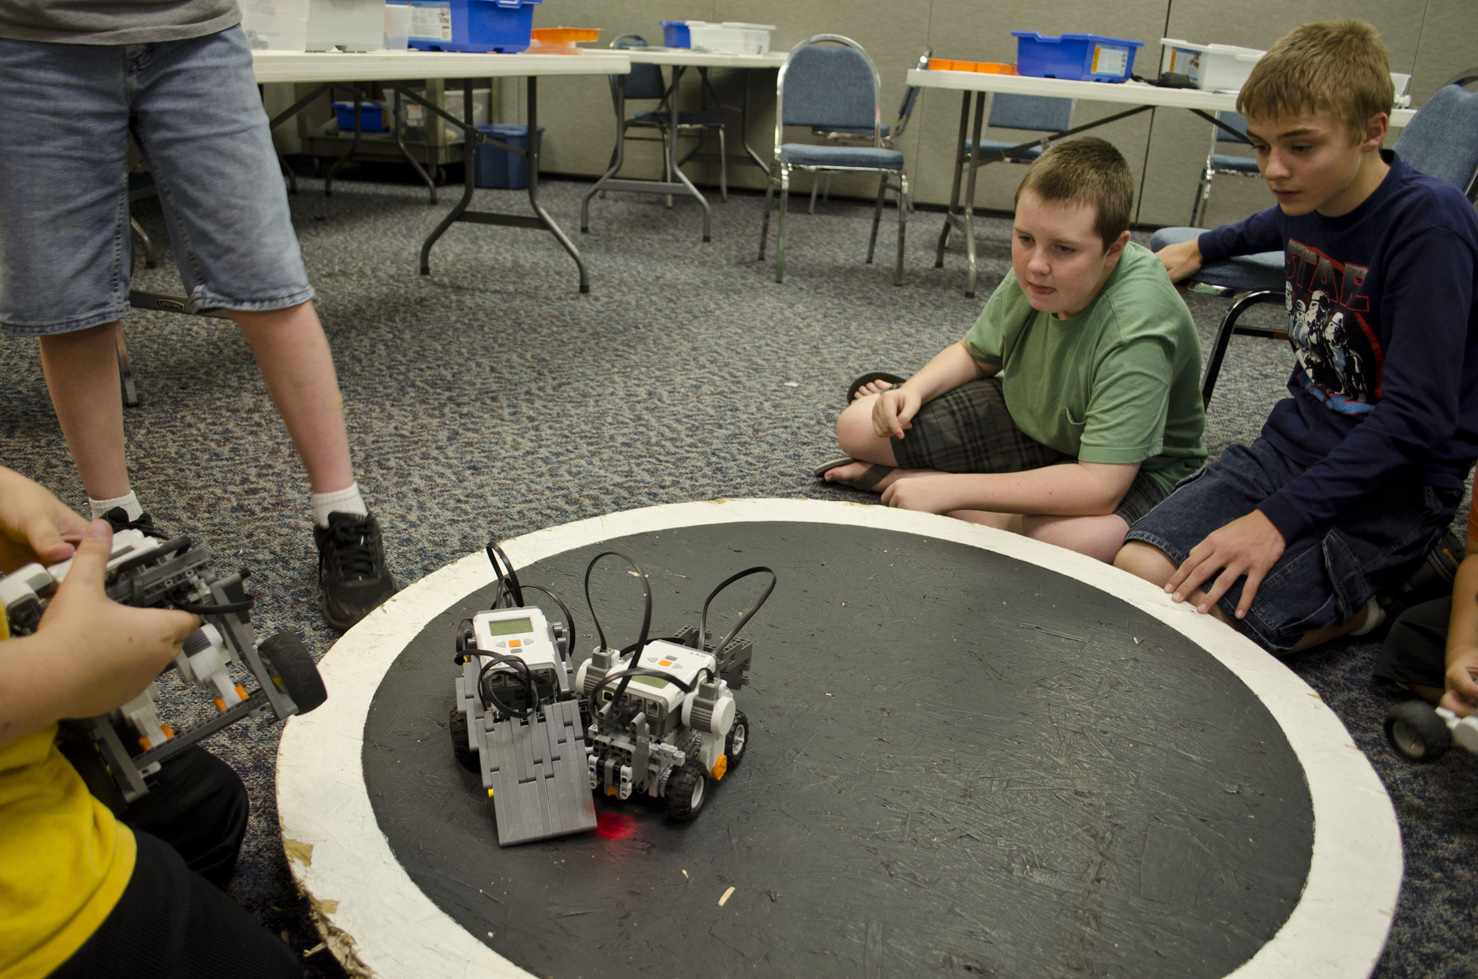 Kcc To Offer Engineering Robotics Summer Camps In July Kcc Daily